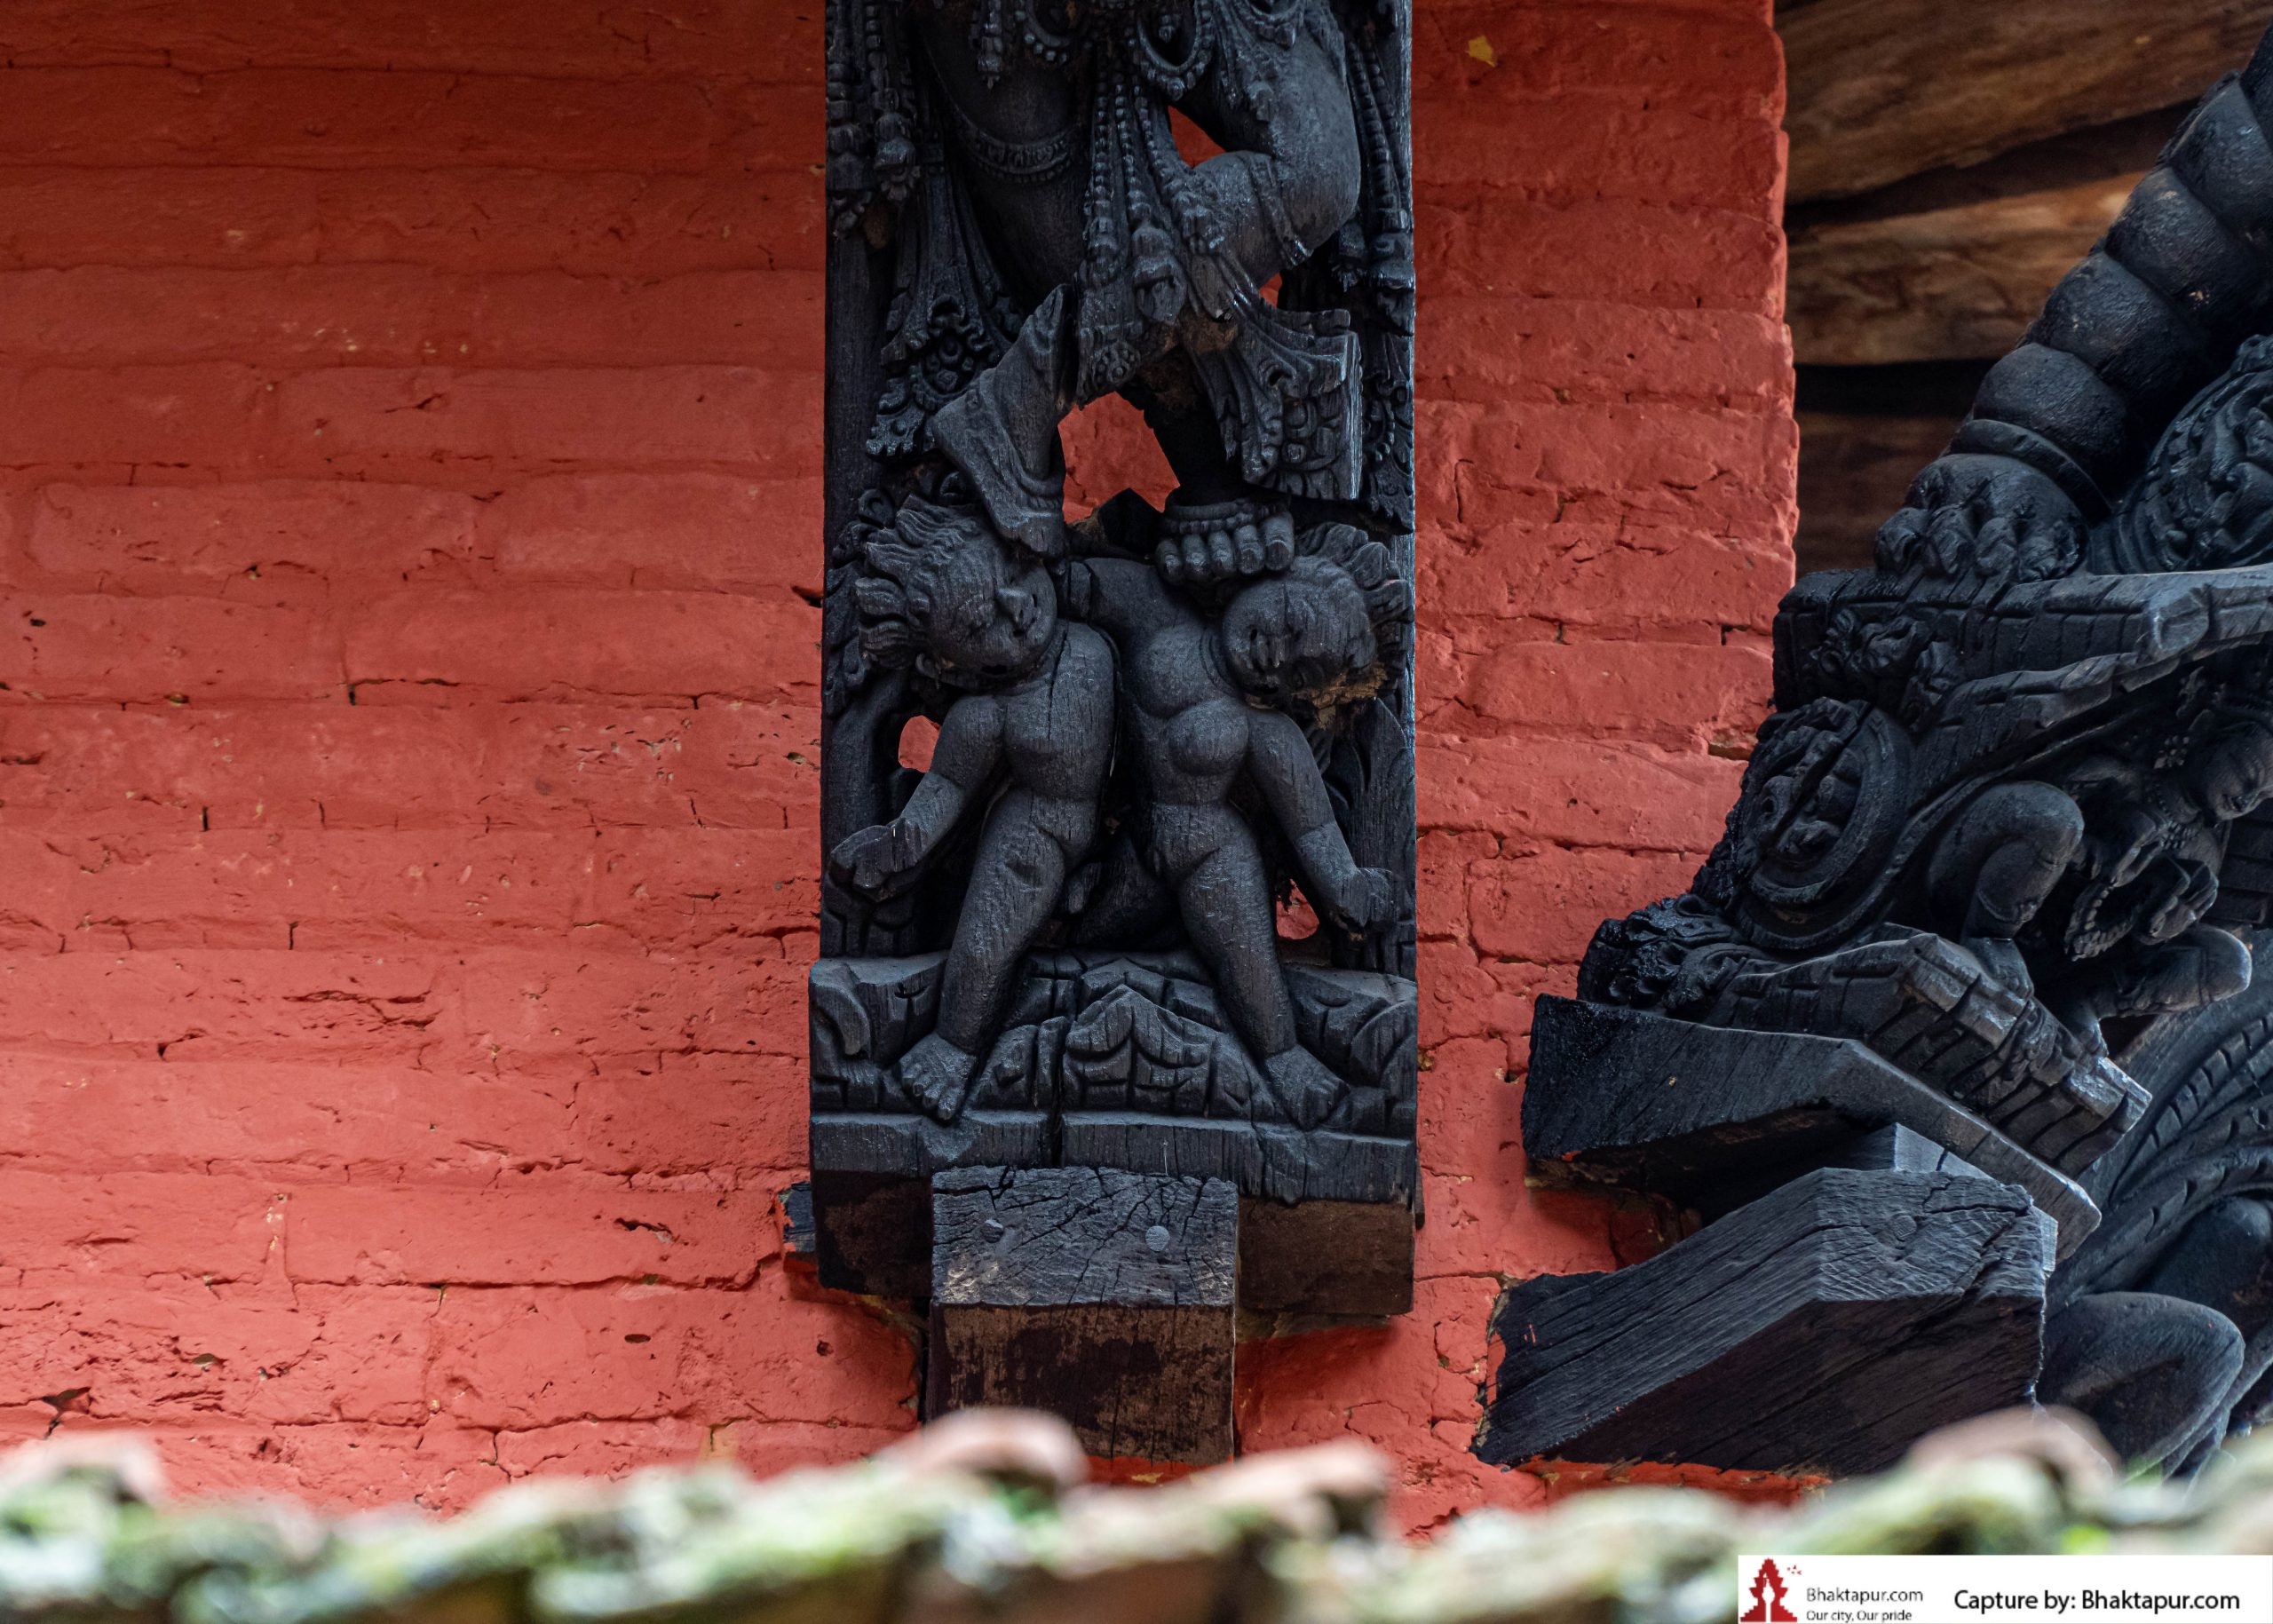 https://www.bhaktapur.com/wp-content/uploads/2021/08/erotic-carving-67-of-137-scaled.jpg